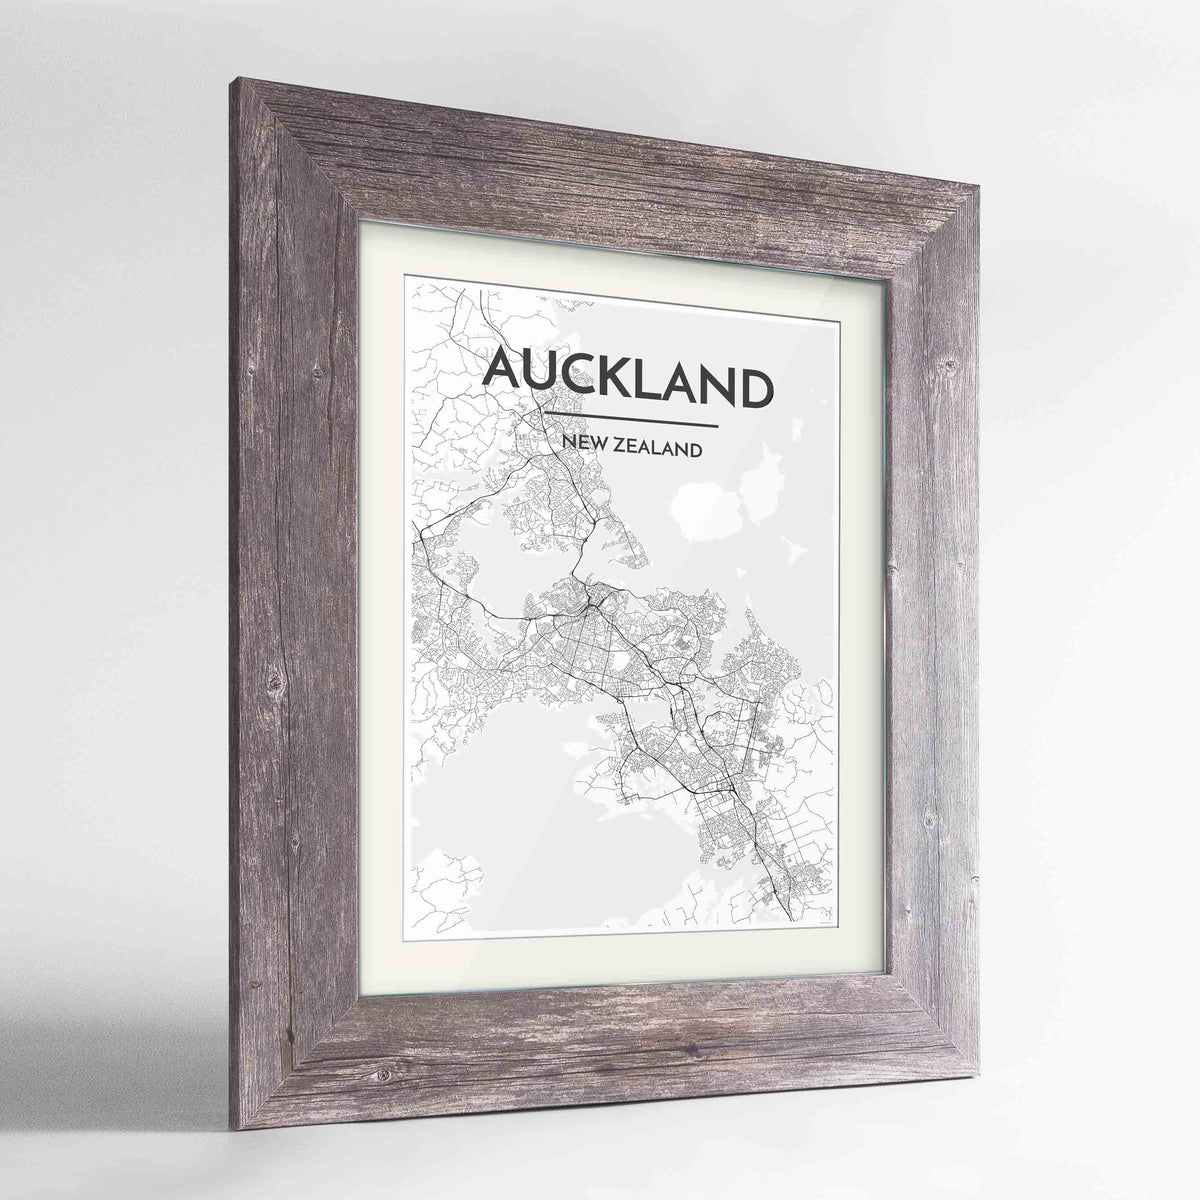 "Framed Auckland Map Art Print 24x36"" Western Grey frame Point Two Design Group"